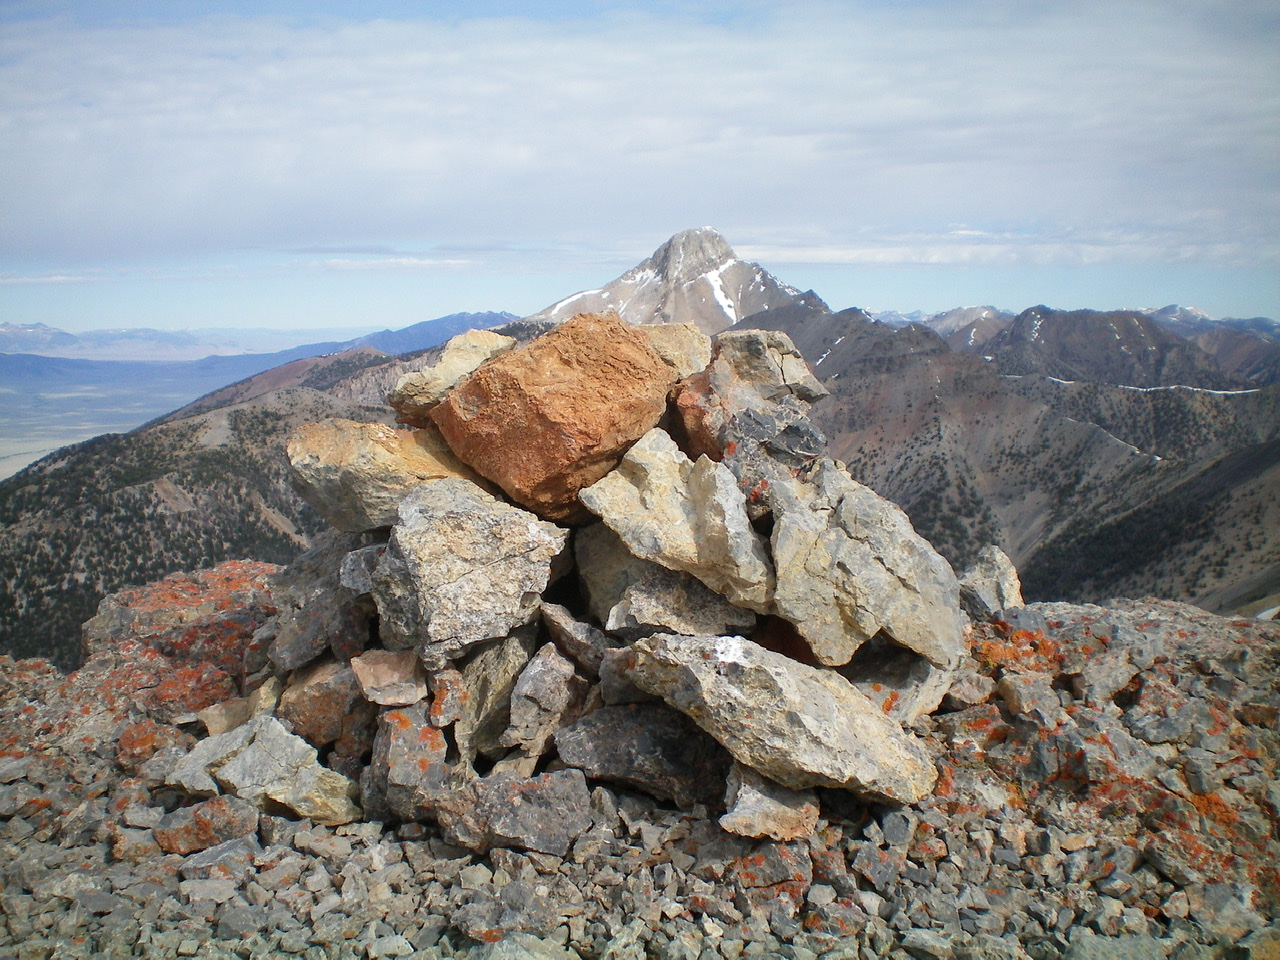 The summit cairn atop Peak 10681 with Bell Mountain in the distance. Livingston Douglas Photo